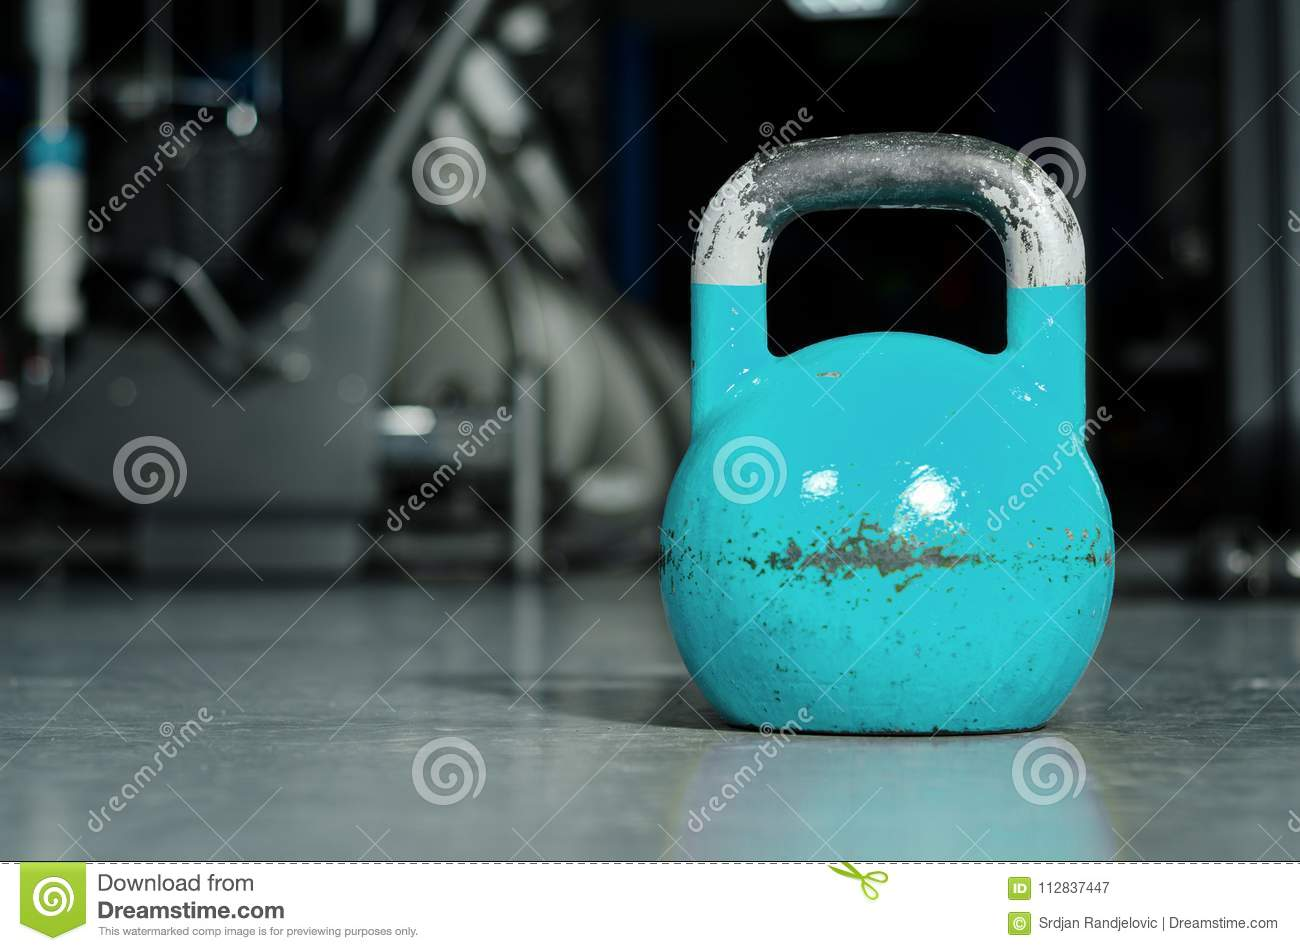 Single Kettlebell On The Gym Floor Ready To Use For Strength